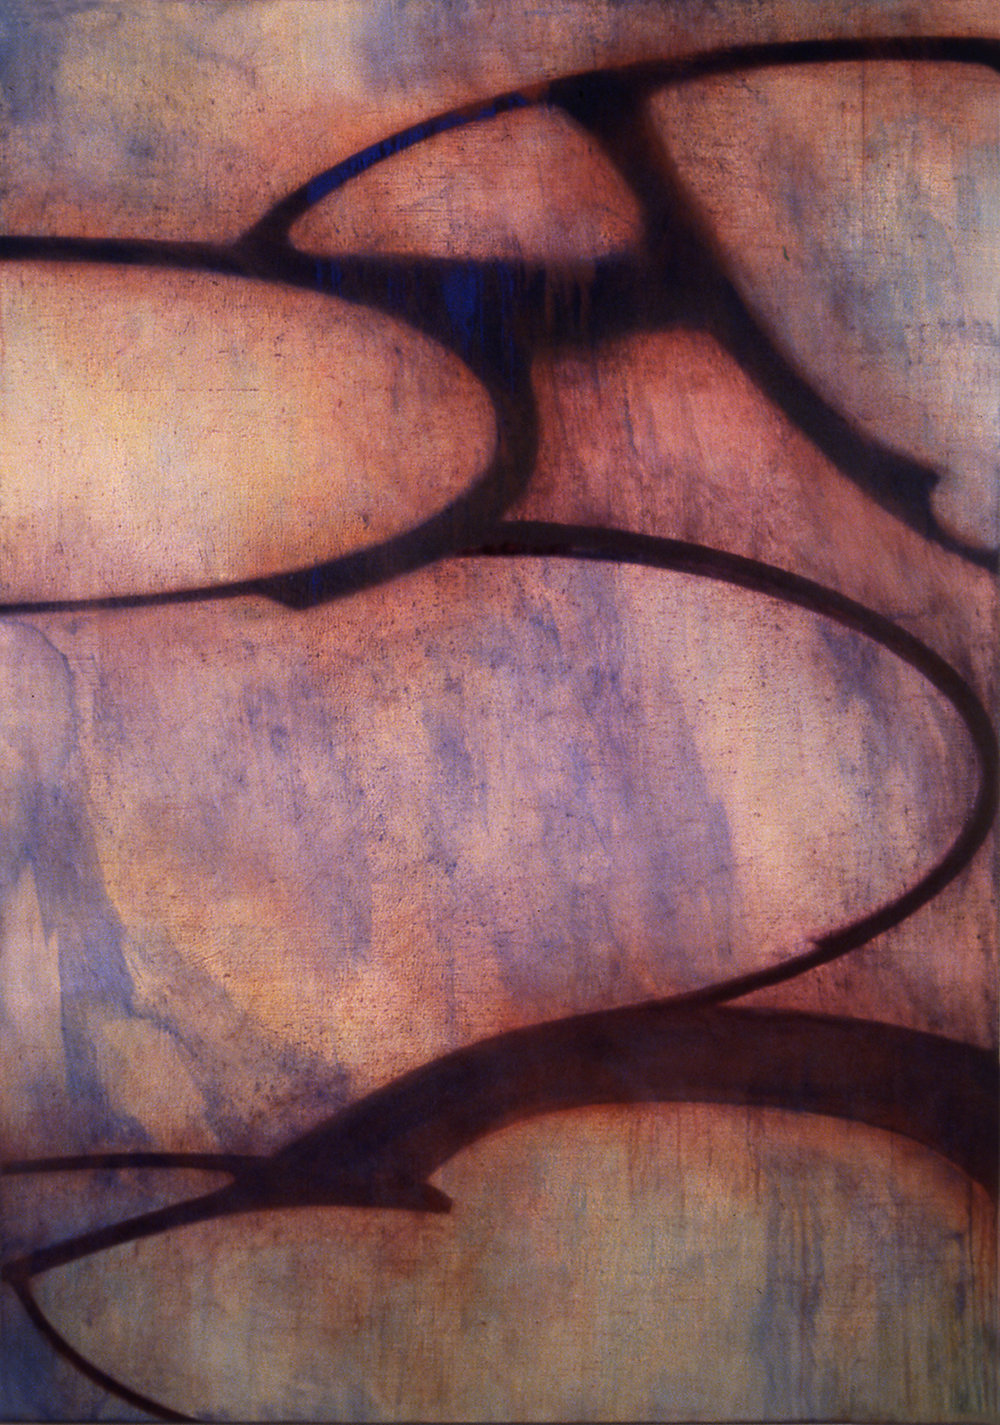 Crown, 2001, Oil, acrylic on linen over panel, 68 x 48 inches.